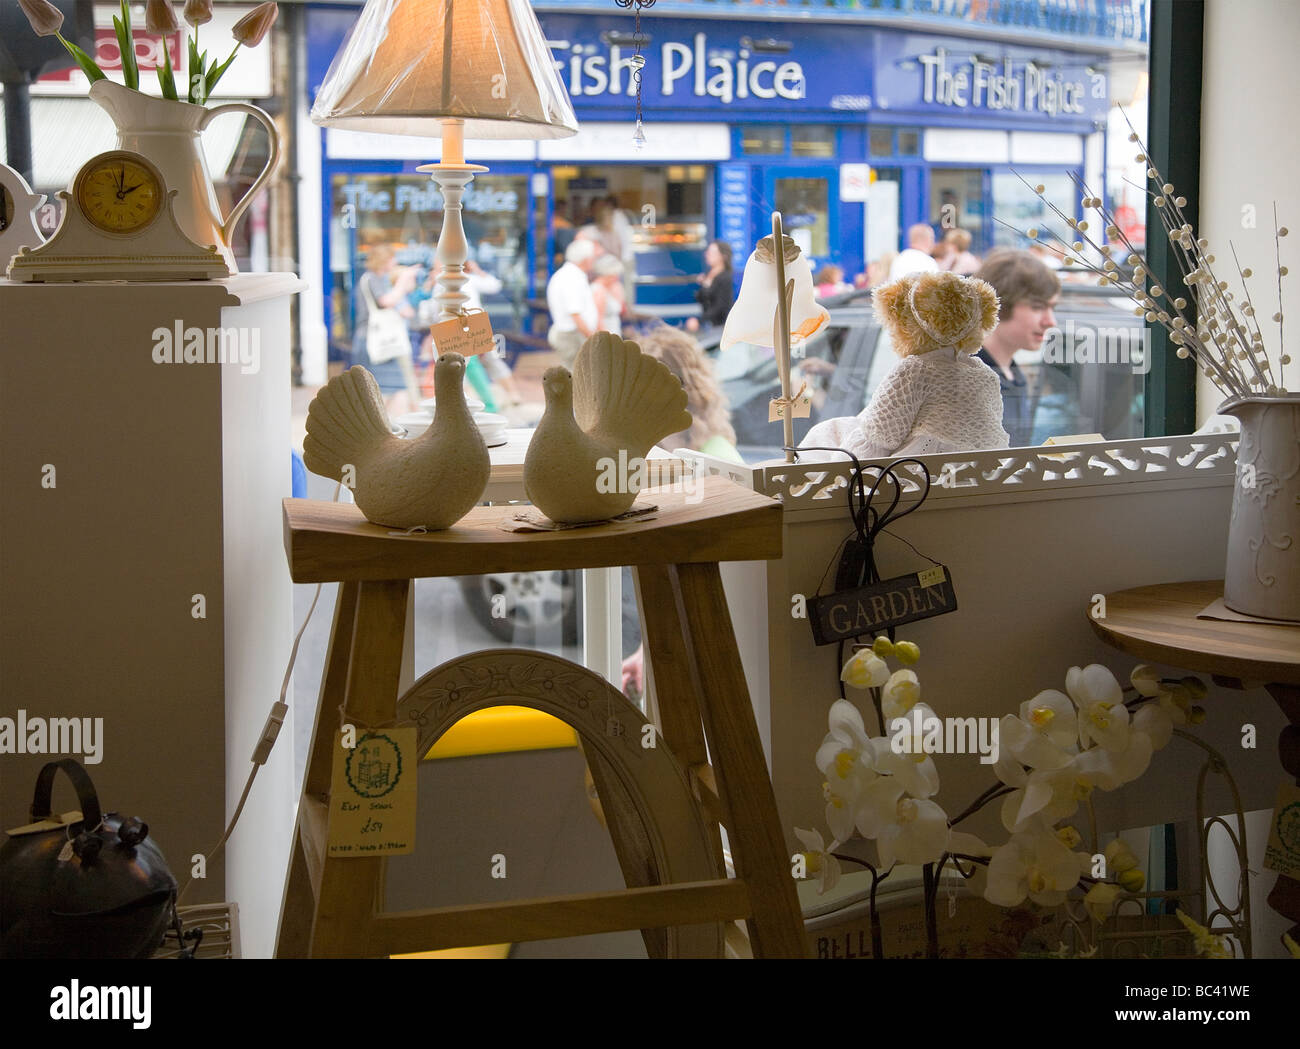 Interior of arts and crafts shop in the seaside town of Swanage, Dorset. UK. View of The Fish Plaice restaurant - Stock Image